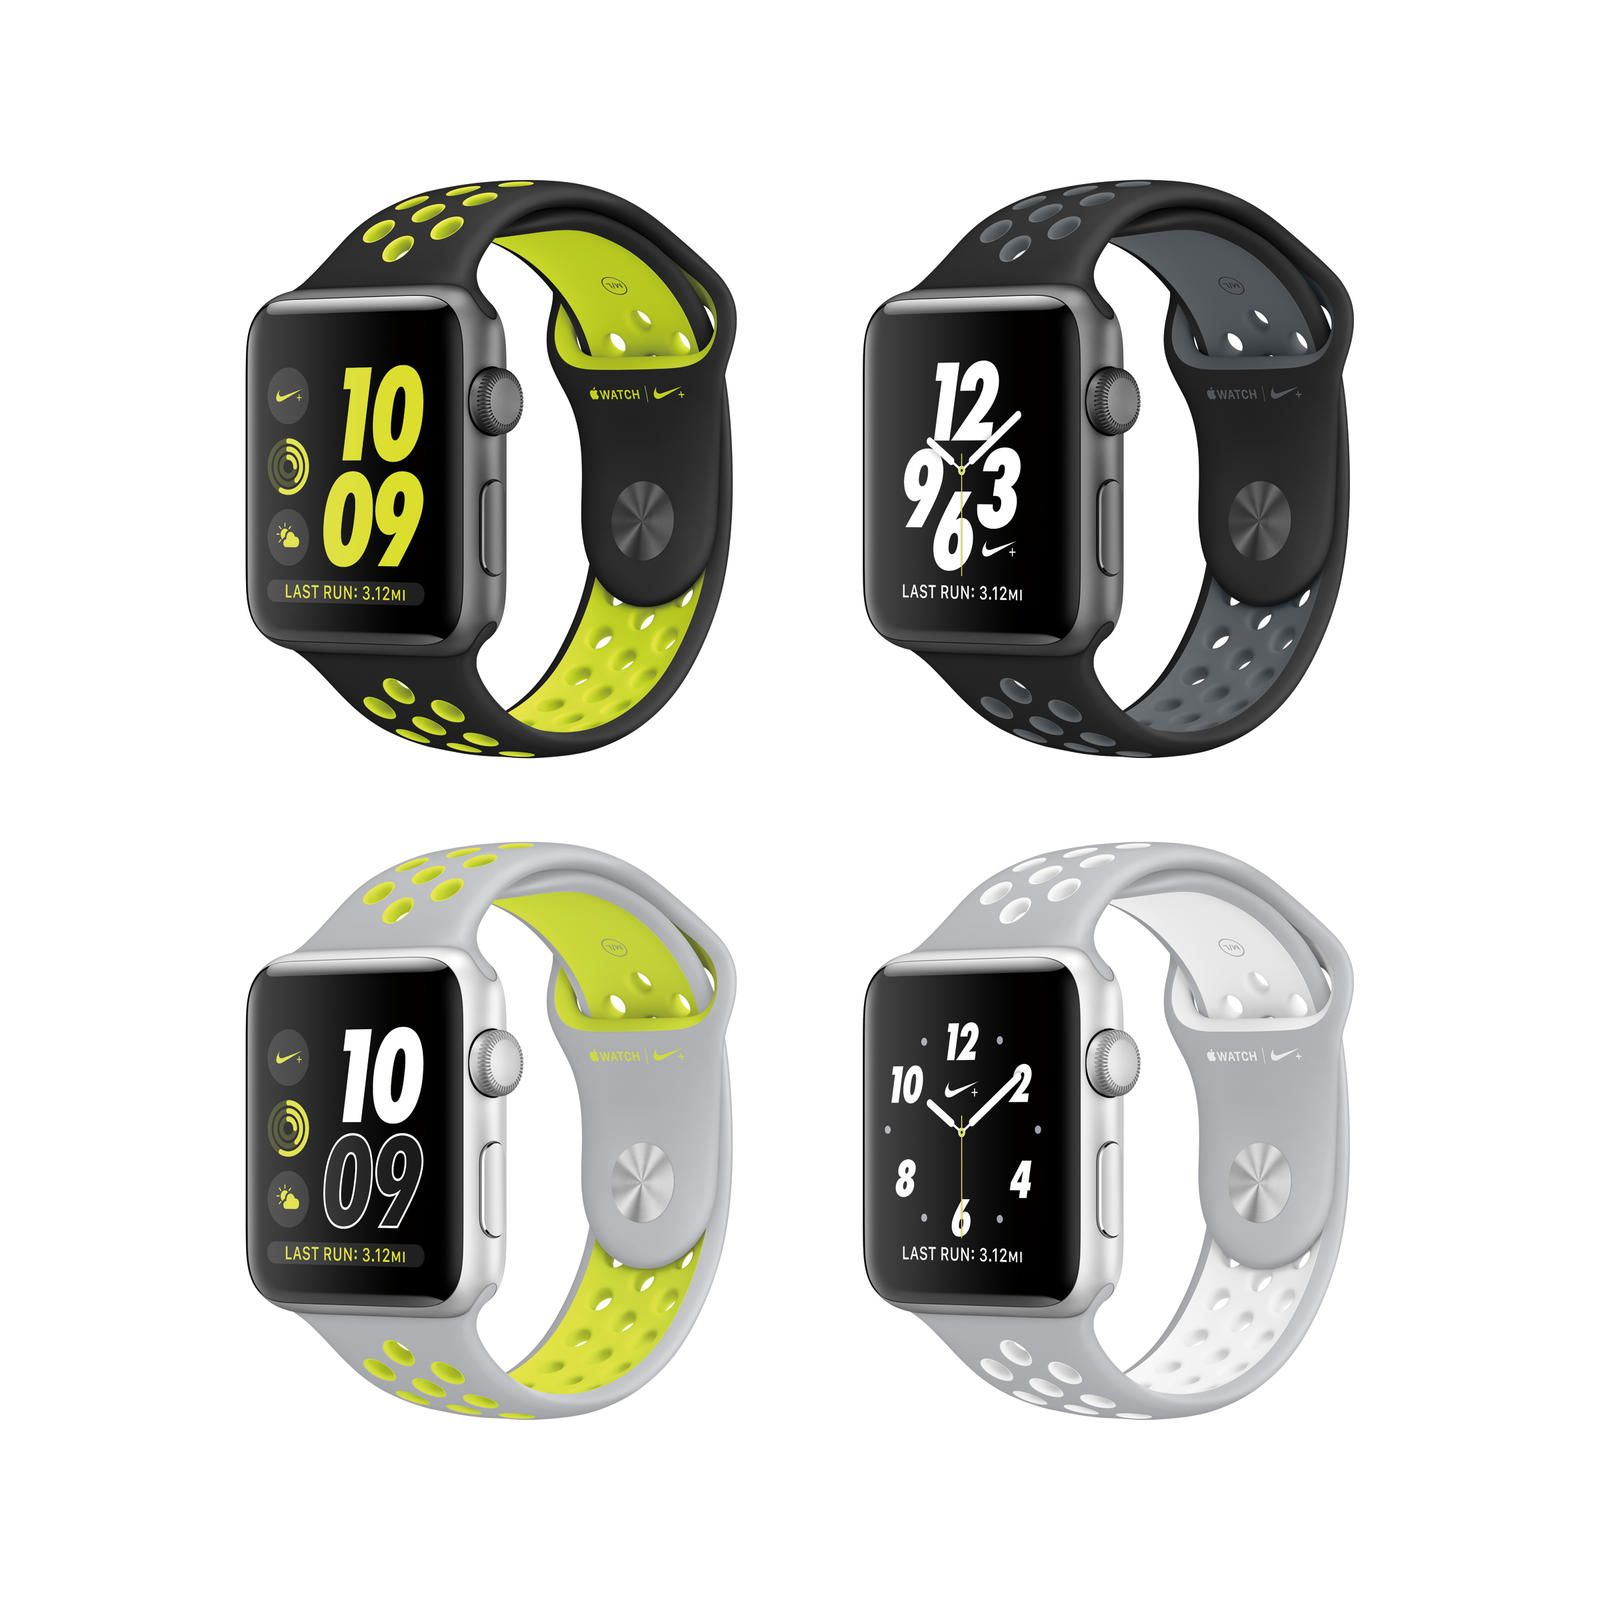 Nike News - Apple & Nike Launch the Perfect Running Partner, Apple Watch…